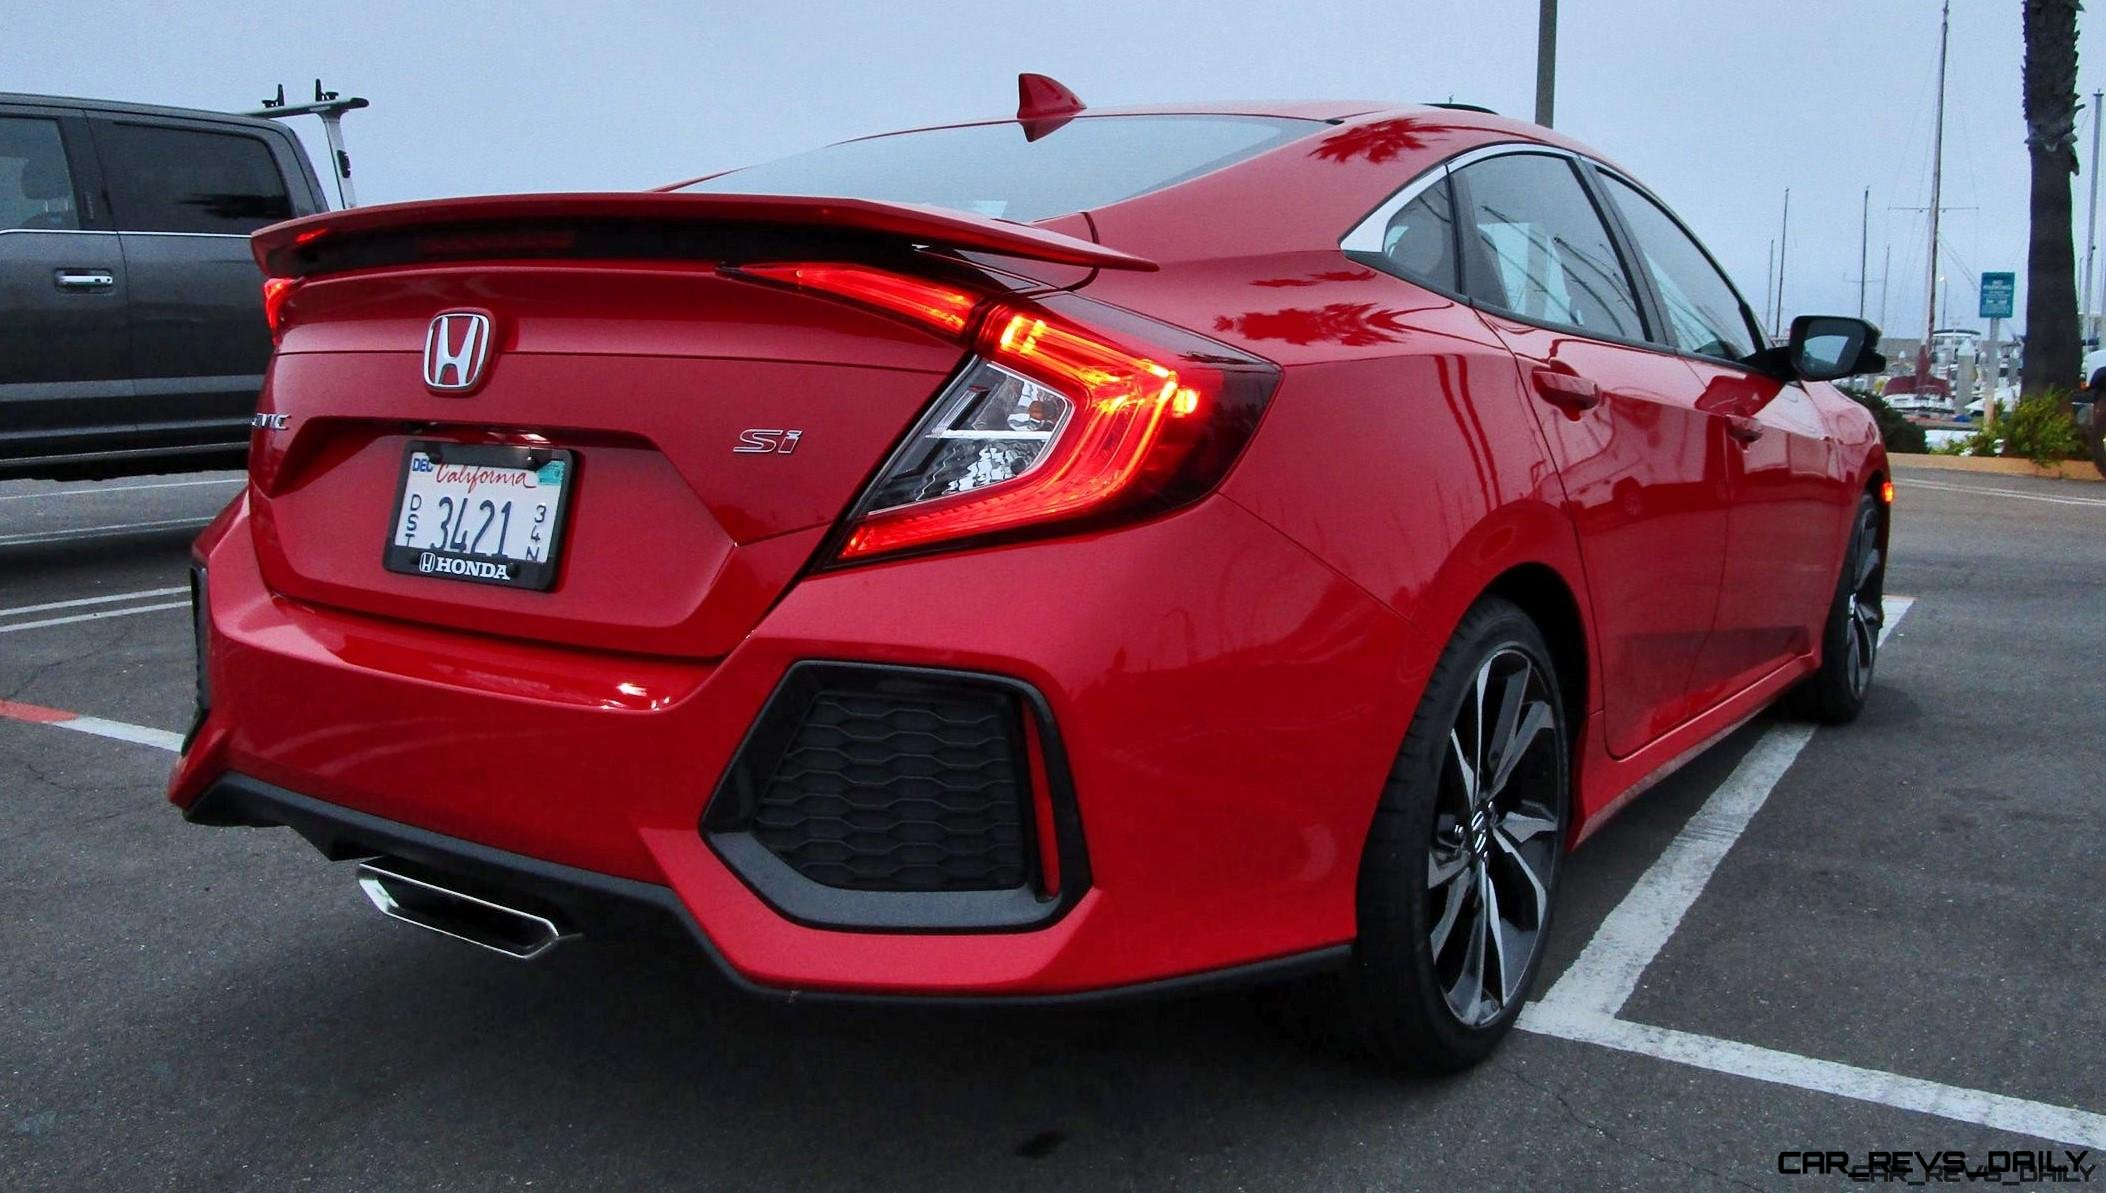 2017 Honda Civic Si Sedan Road Test Review By Ben Lewis